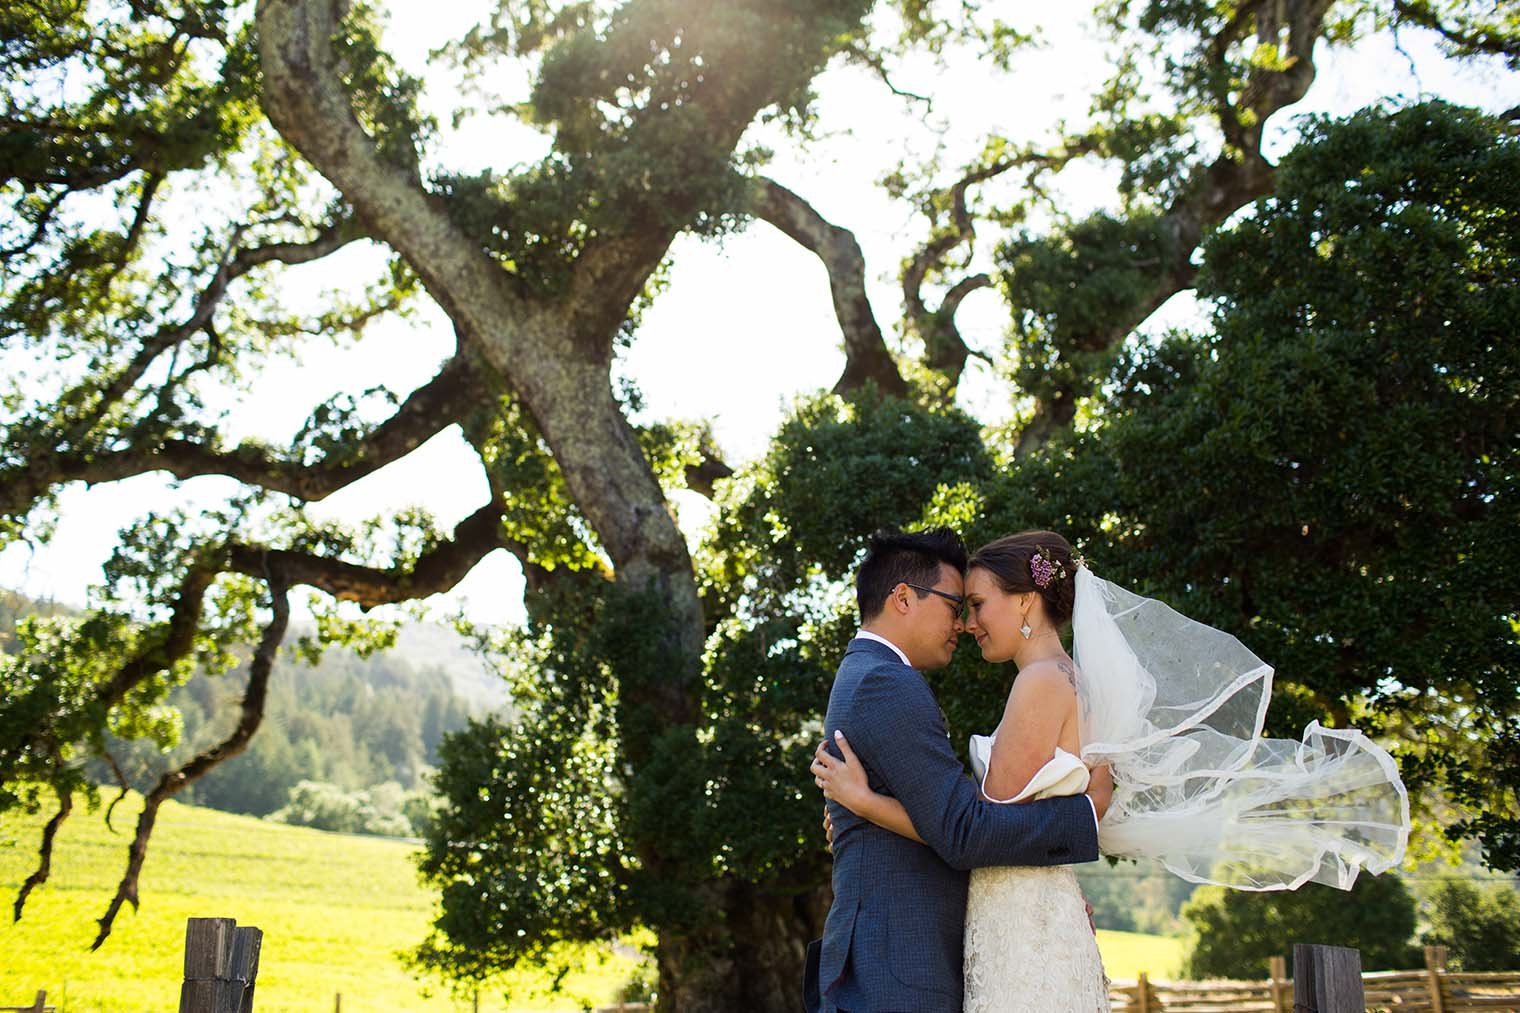 wedding photography at jack london state historic park